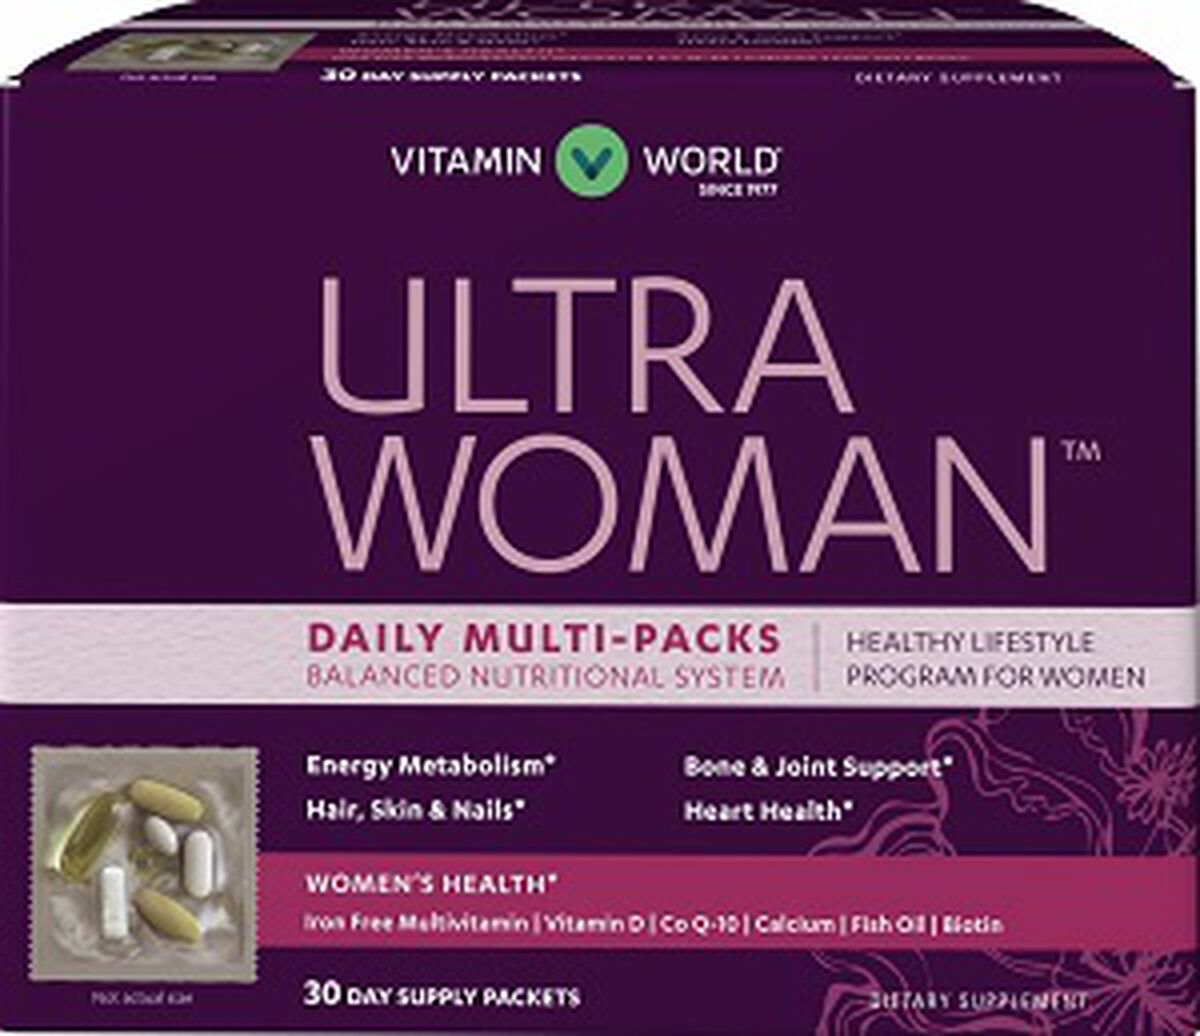 Ultra Woman™ Daily Multivitamin Packs | Women's Vitamins ...